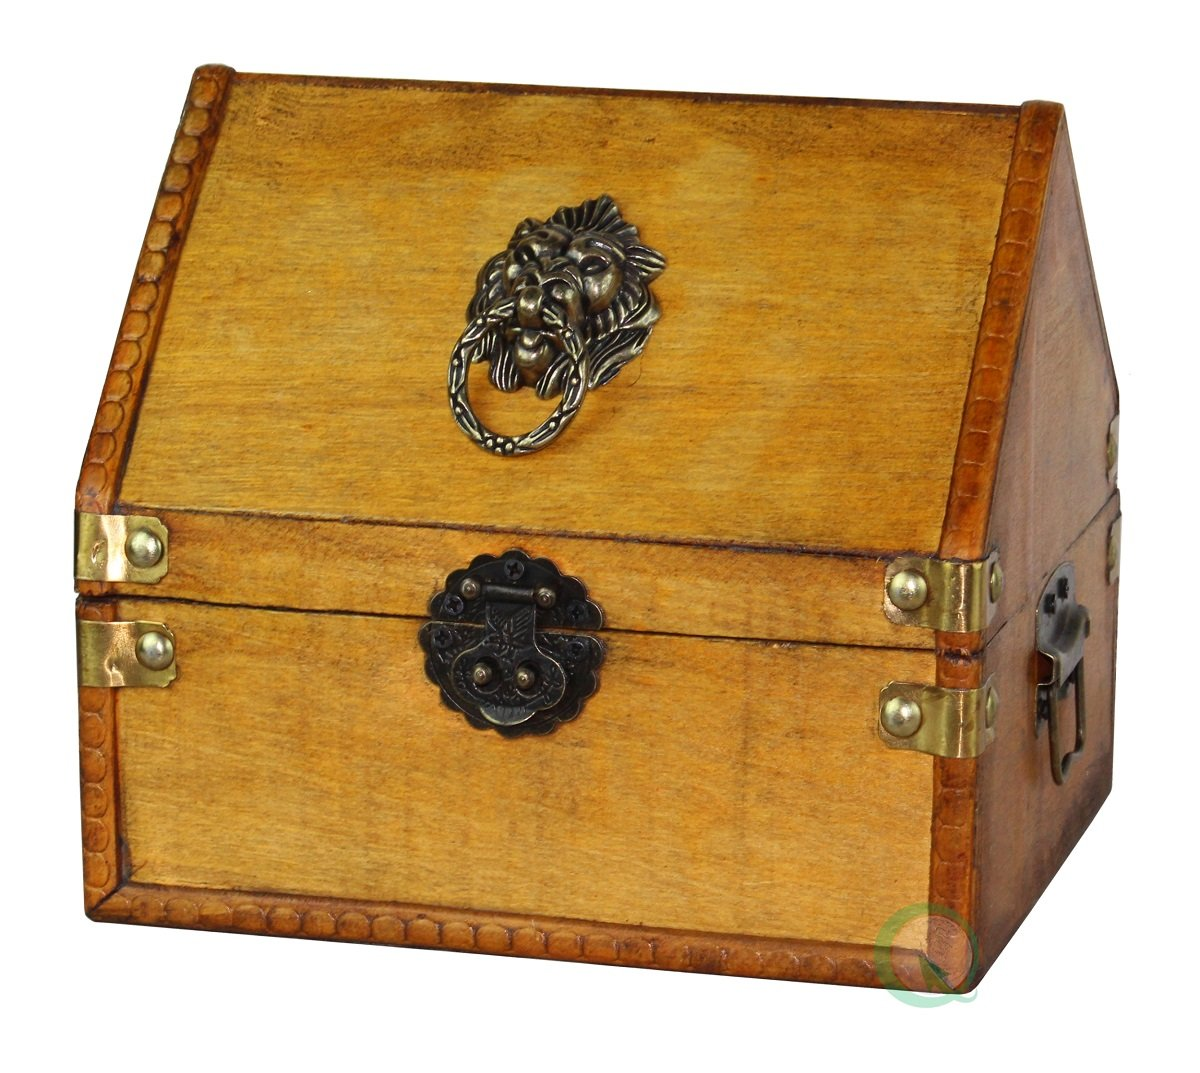 Vintiquewise(TM) Small Pirate Chest/Decorative Box with Lion Rings by Vintiquewise